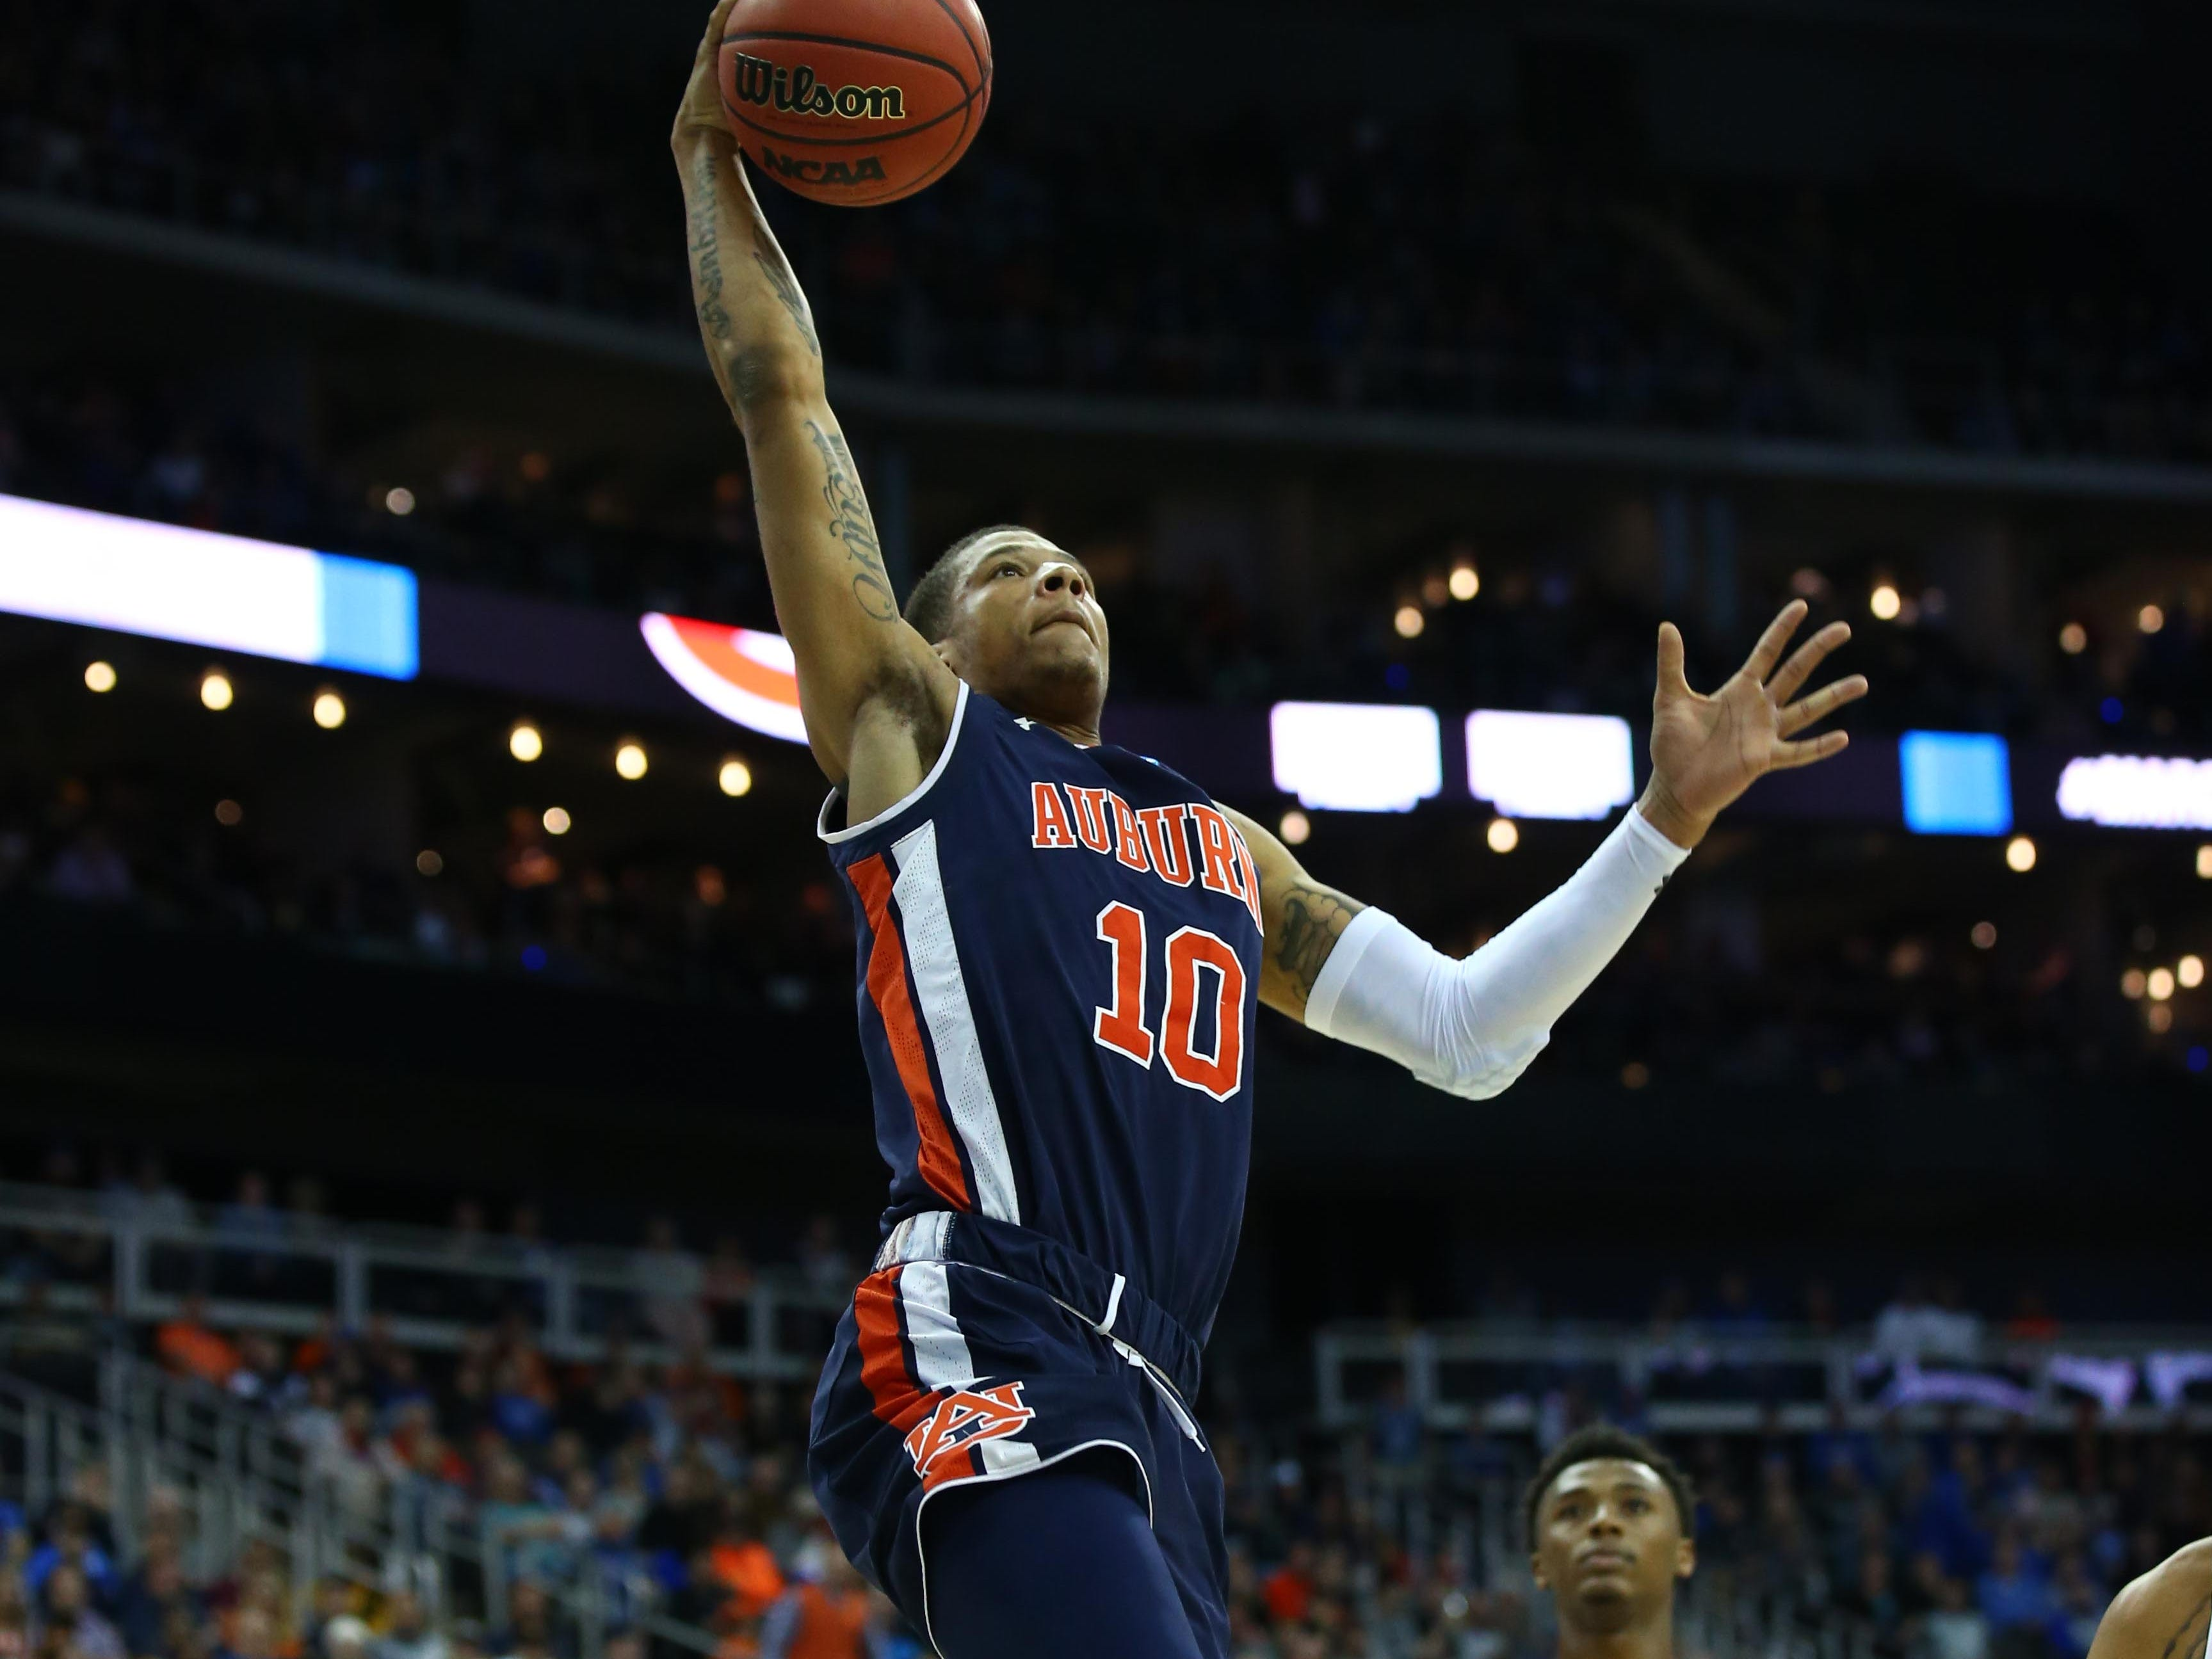 Mar 31, 2019; Kansas City, MO, United States; Auburn Tigers guard Samir Doughty (10) shoots against the Kentucky Wildcats during the first half in the championship game of the midwest regional of the 2019 NCAA Tournament at Sprint Center. Mandatory Credit: Jay Biggerstaff-USA TODAY Sports